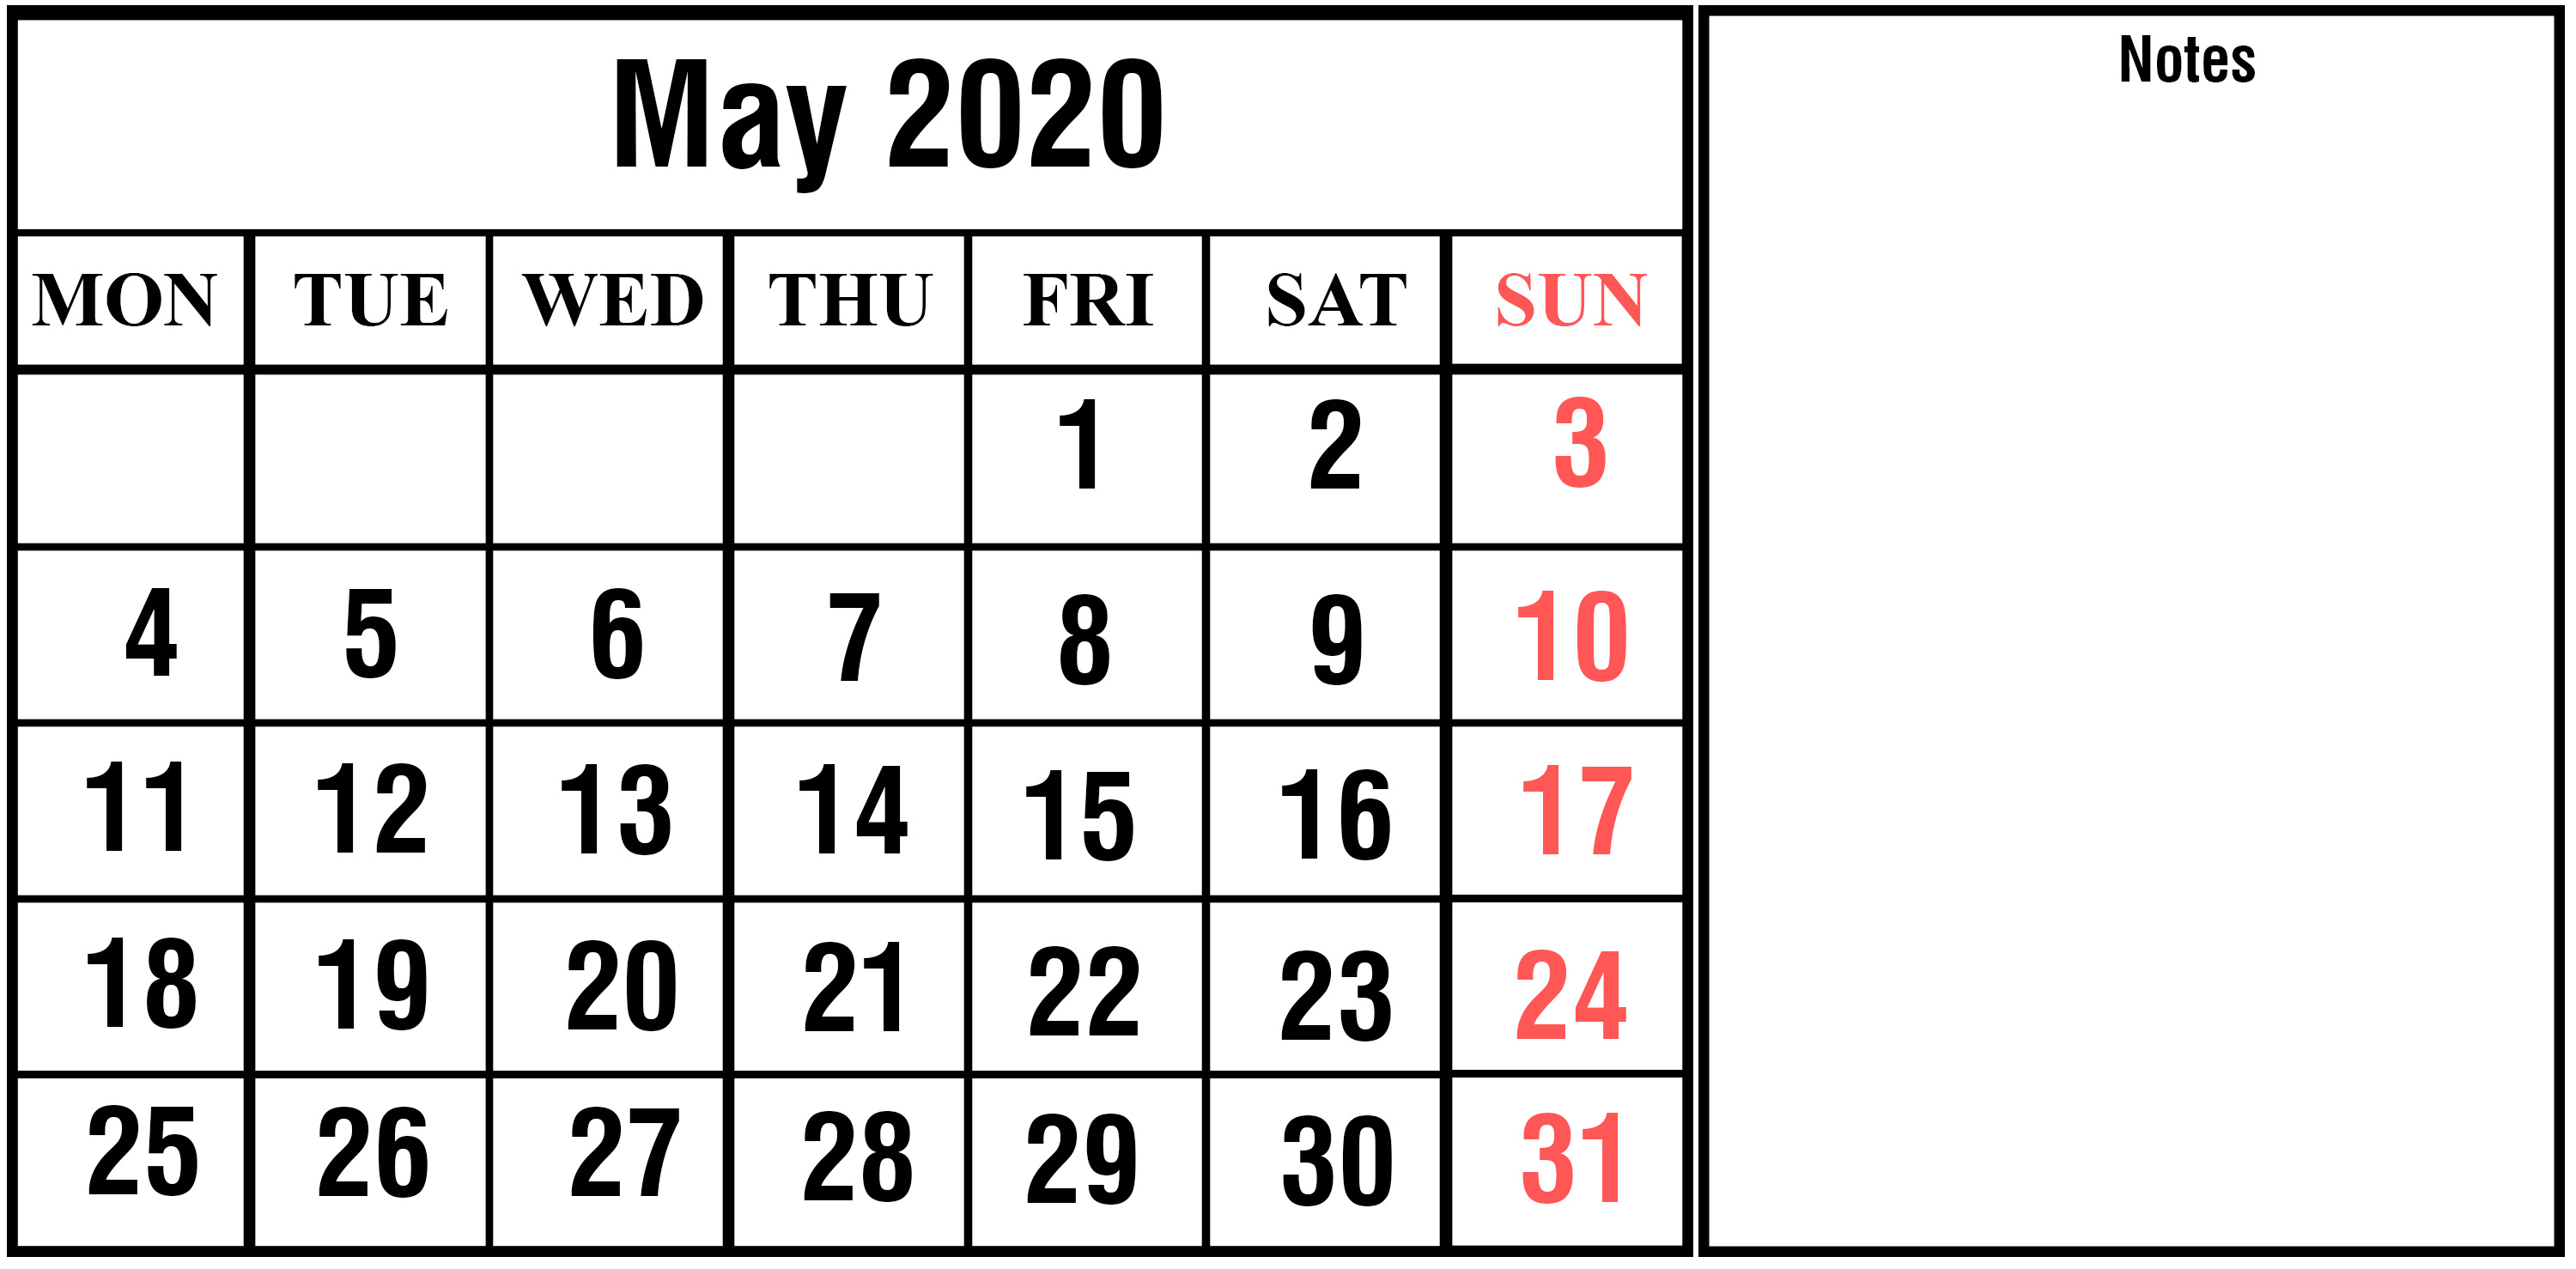 May 2020 Blank Calendar with Notes